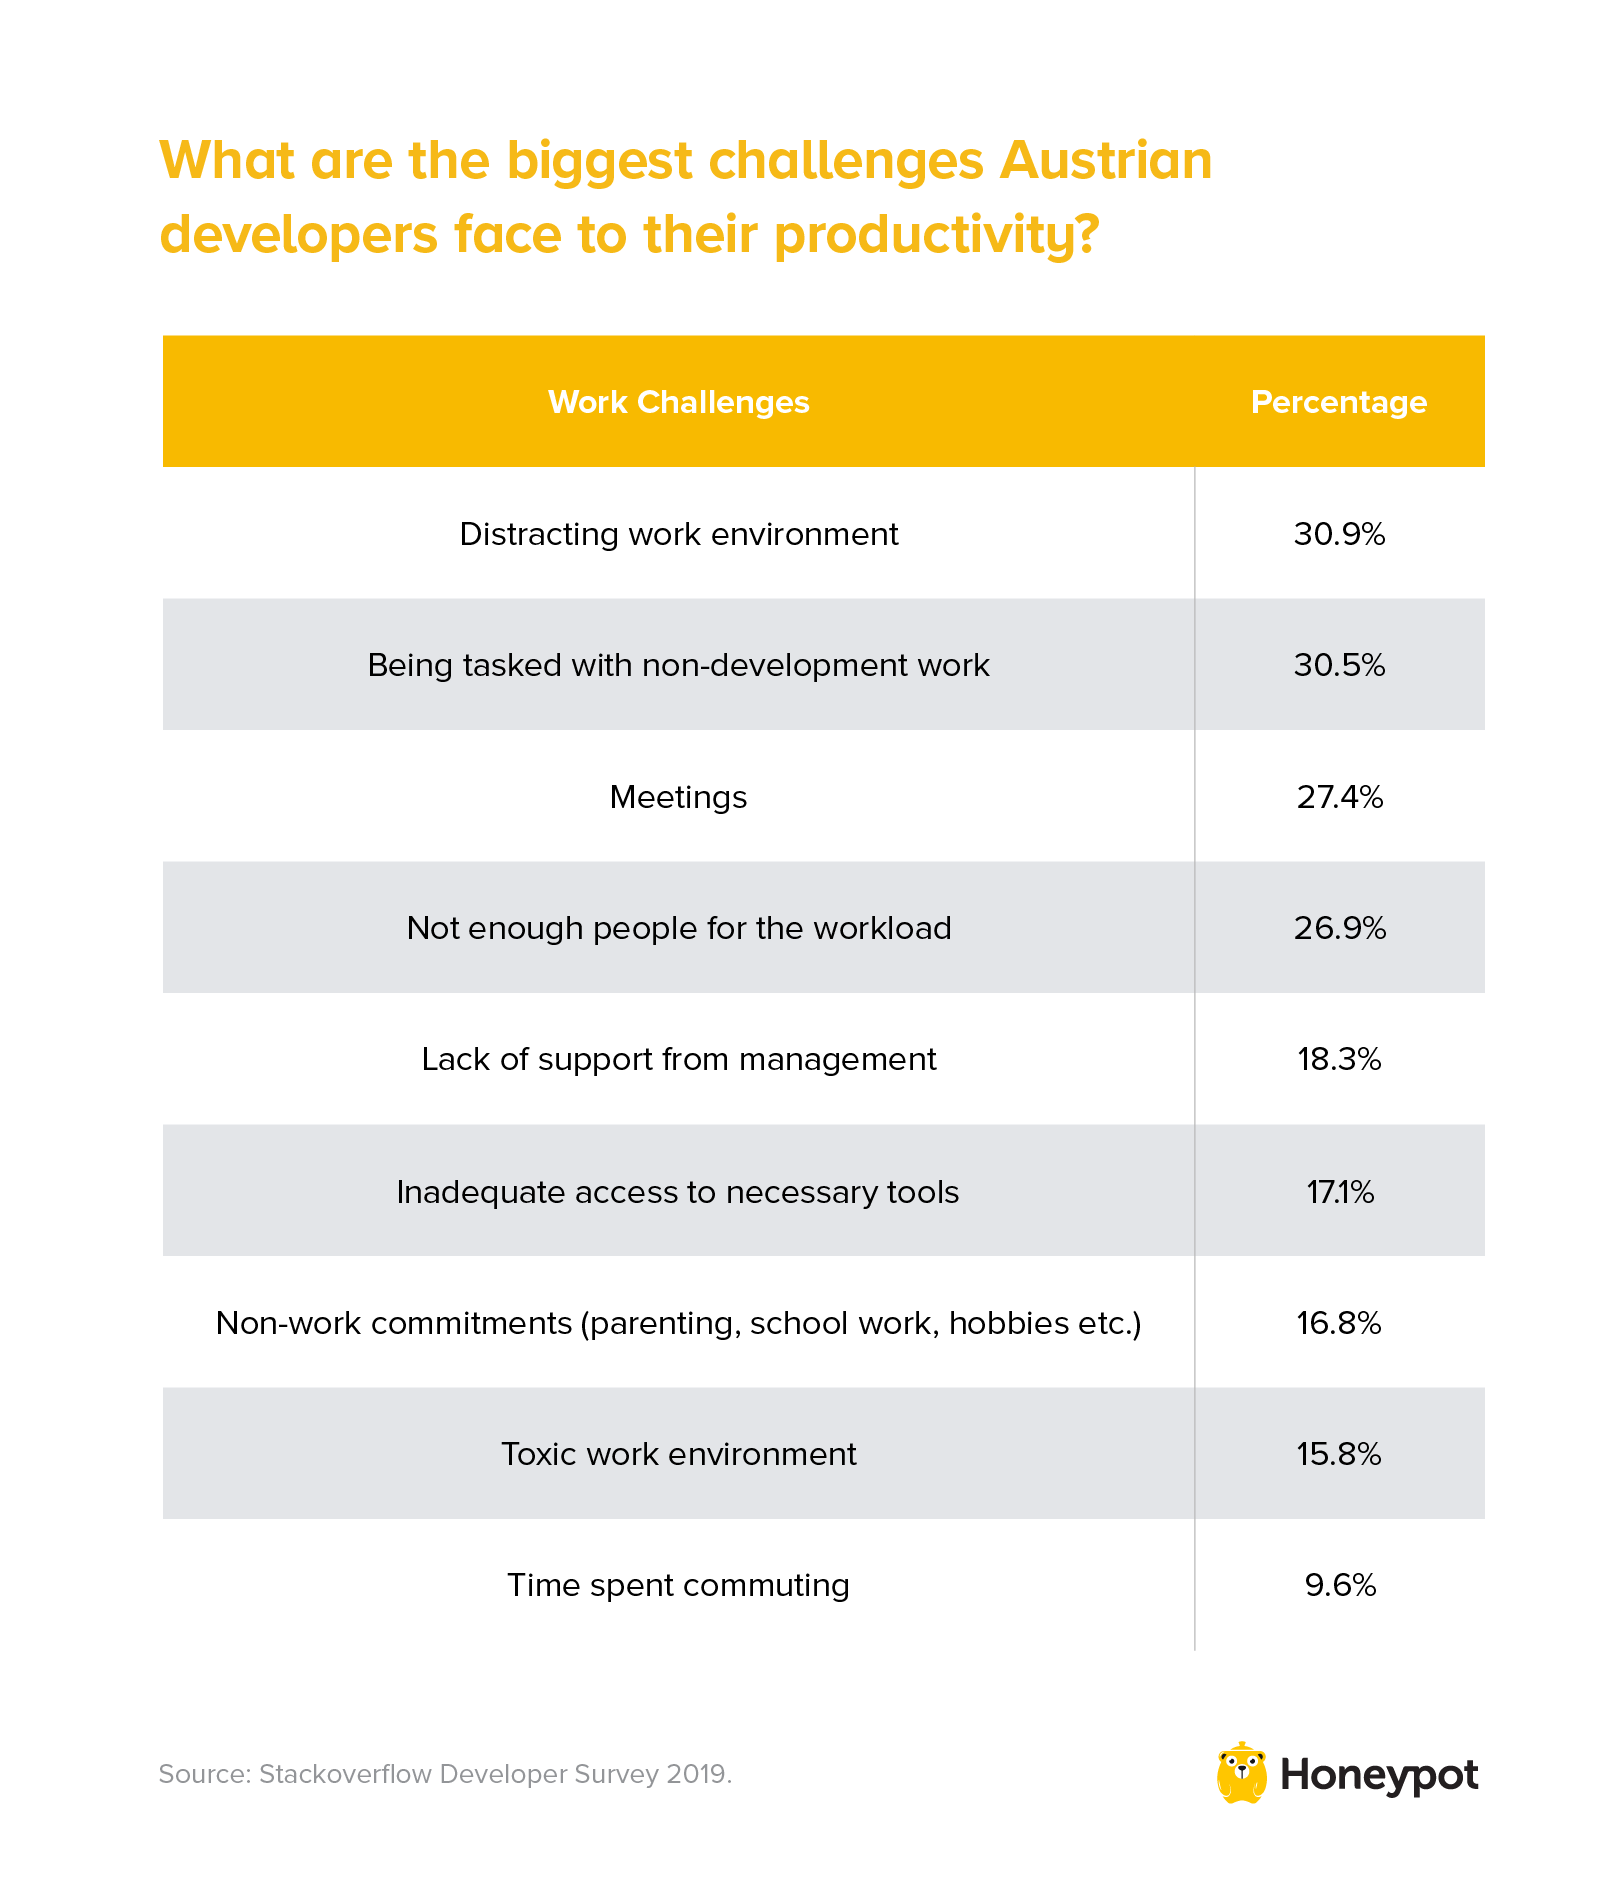 Biggest challenges Austrian developers face to their productivity